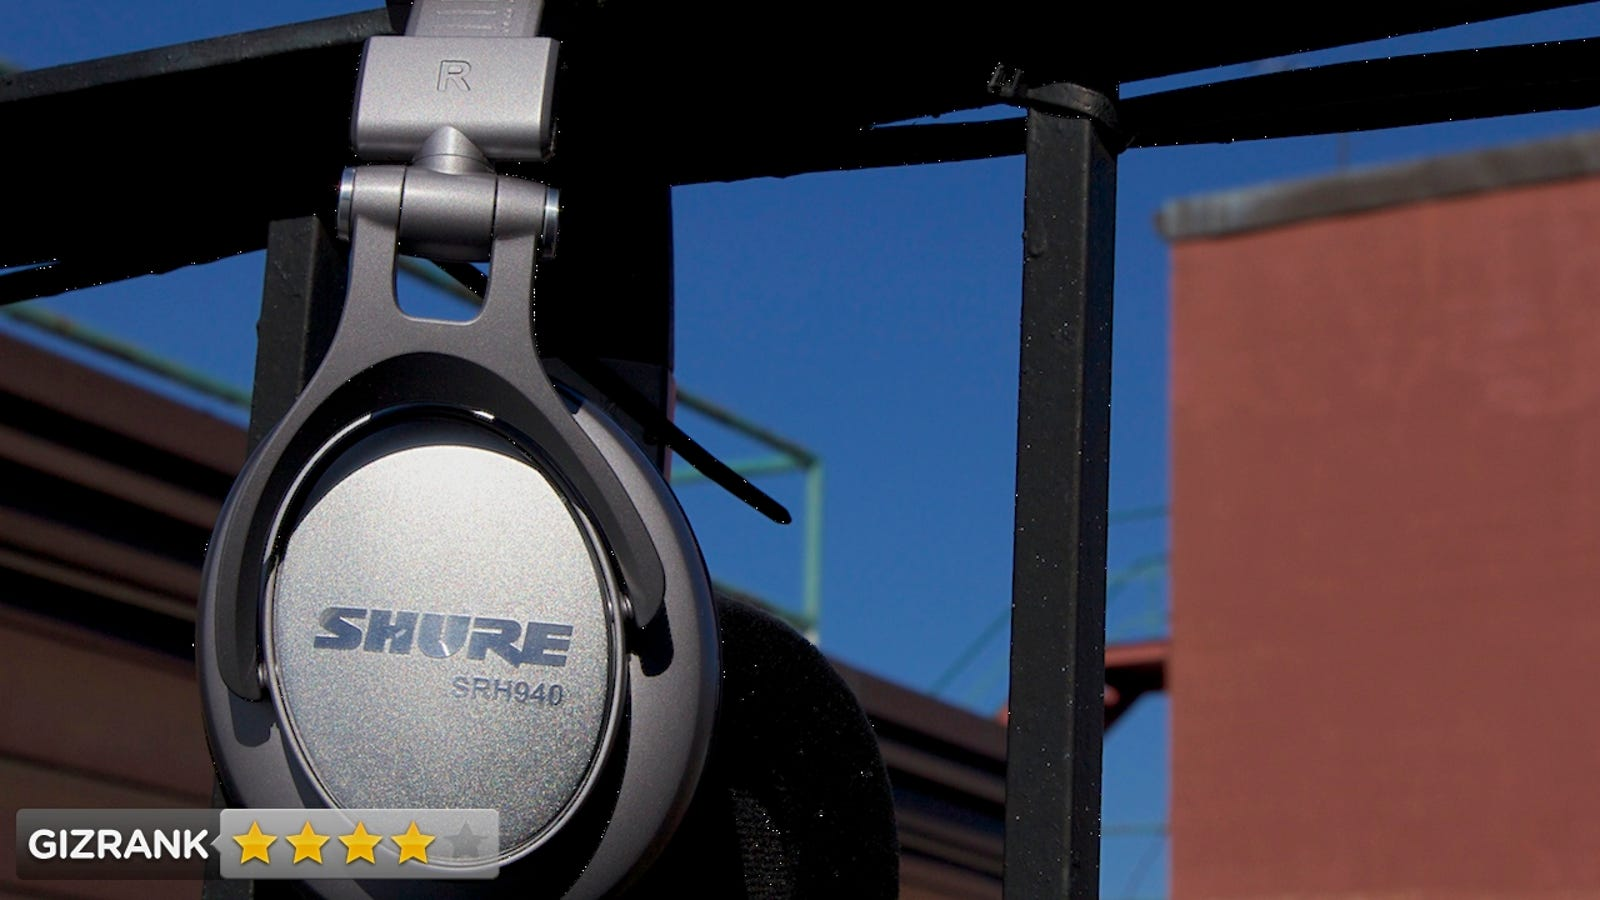 ear buds rotisserie - Shure SRH-940 Headphones Lightning Review: Serious Bang for the Buck